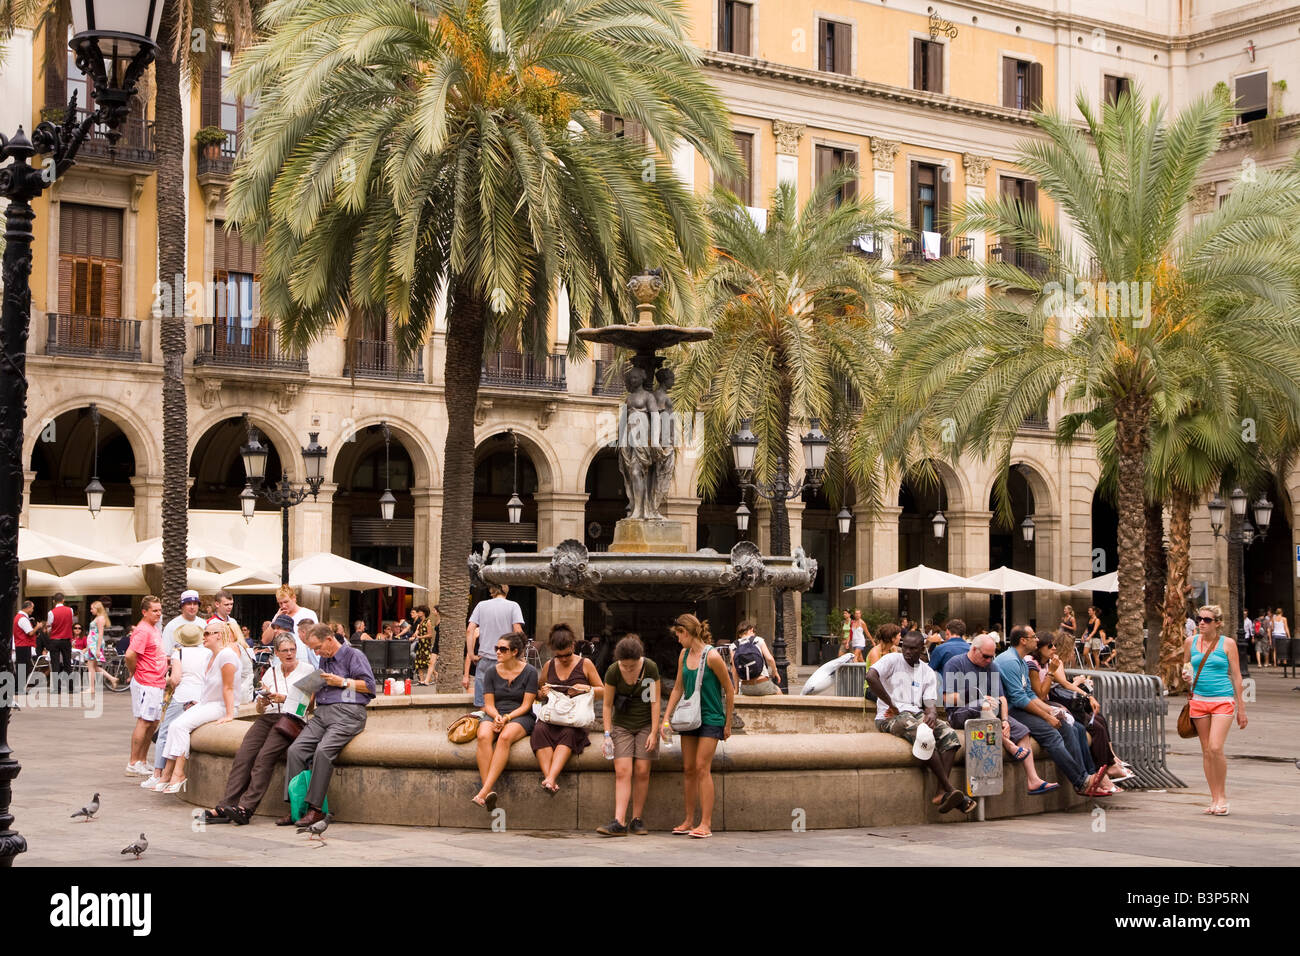 Placa Real in Barcelona Spain - Stock Image